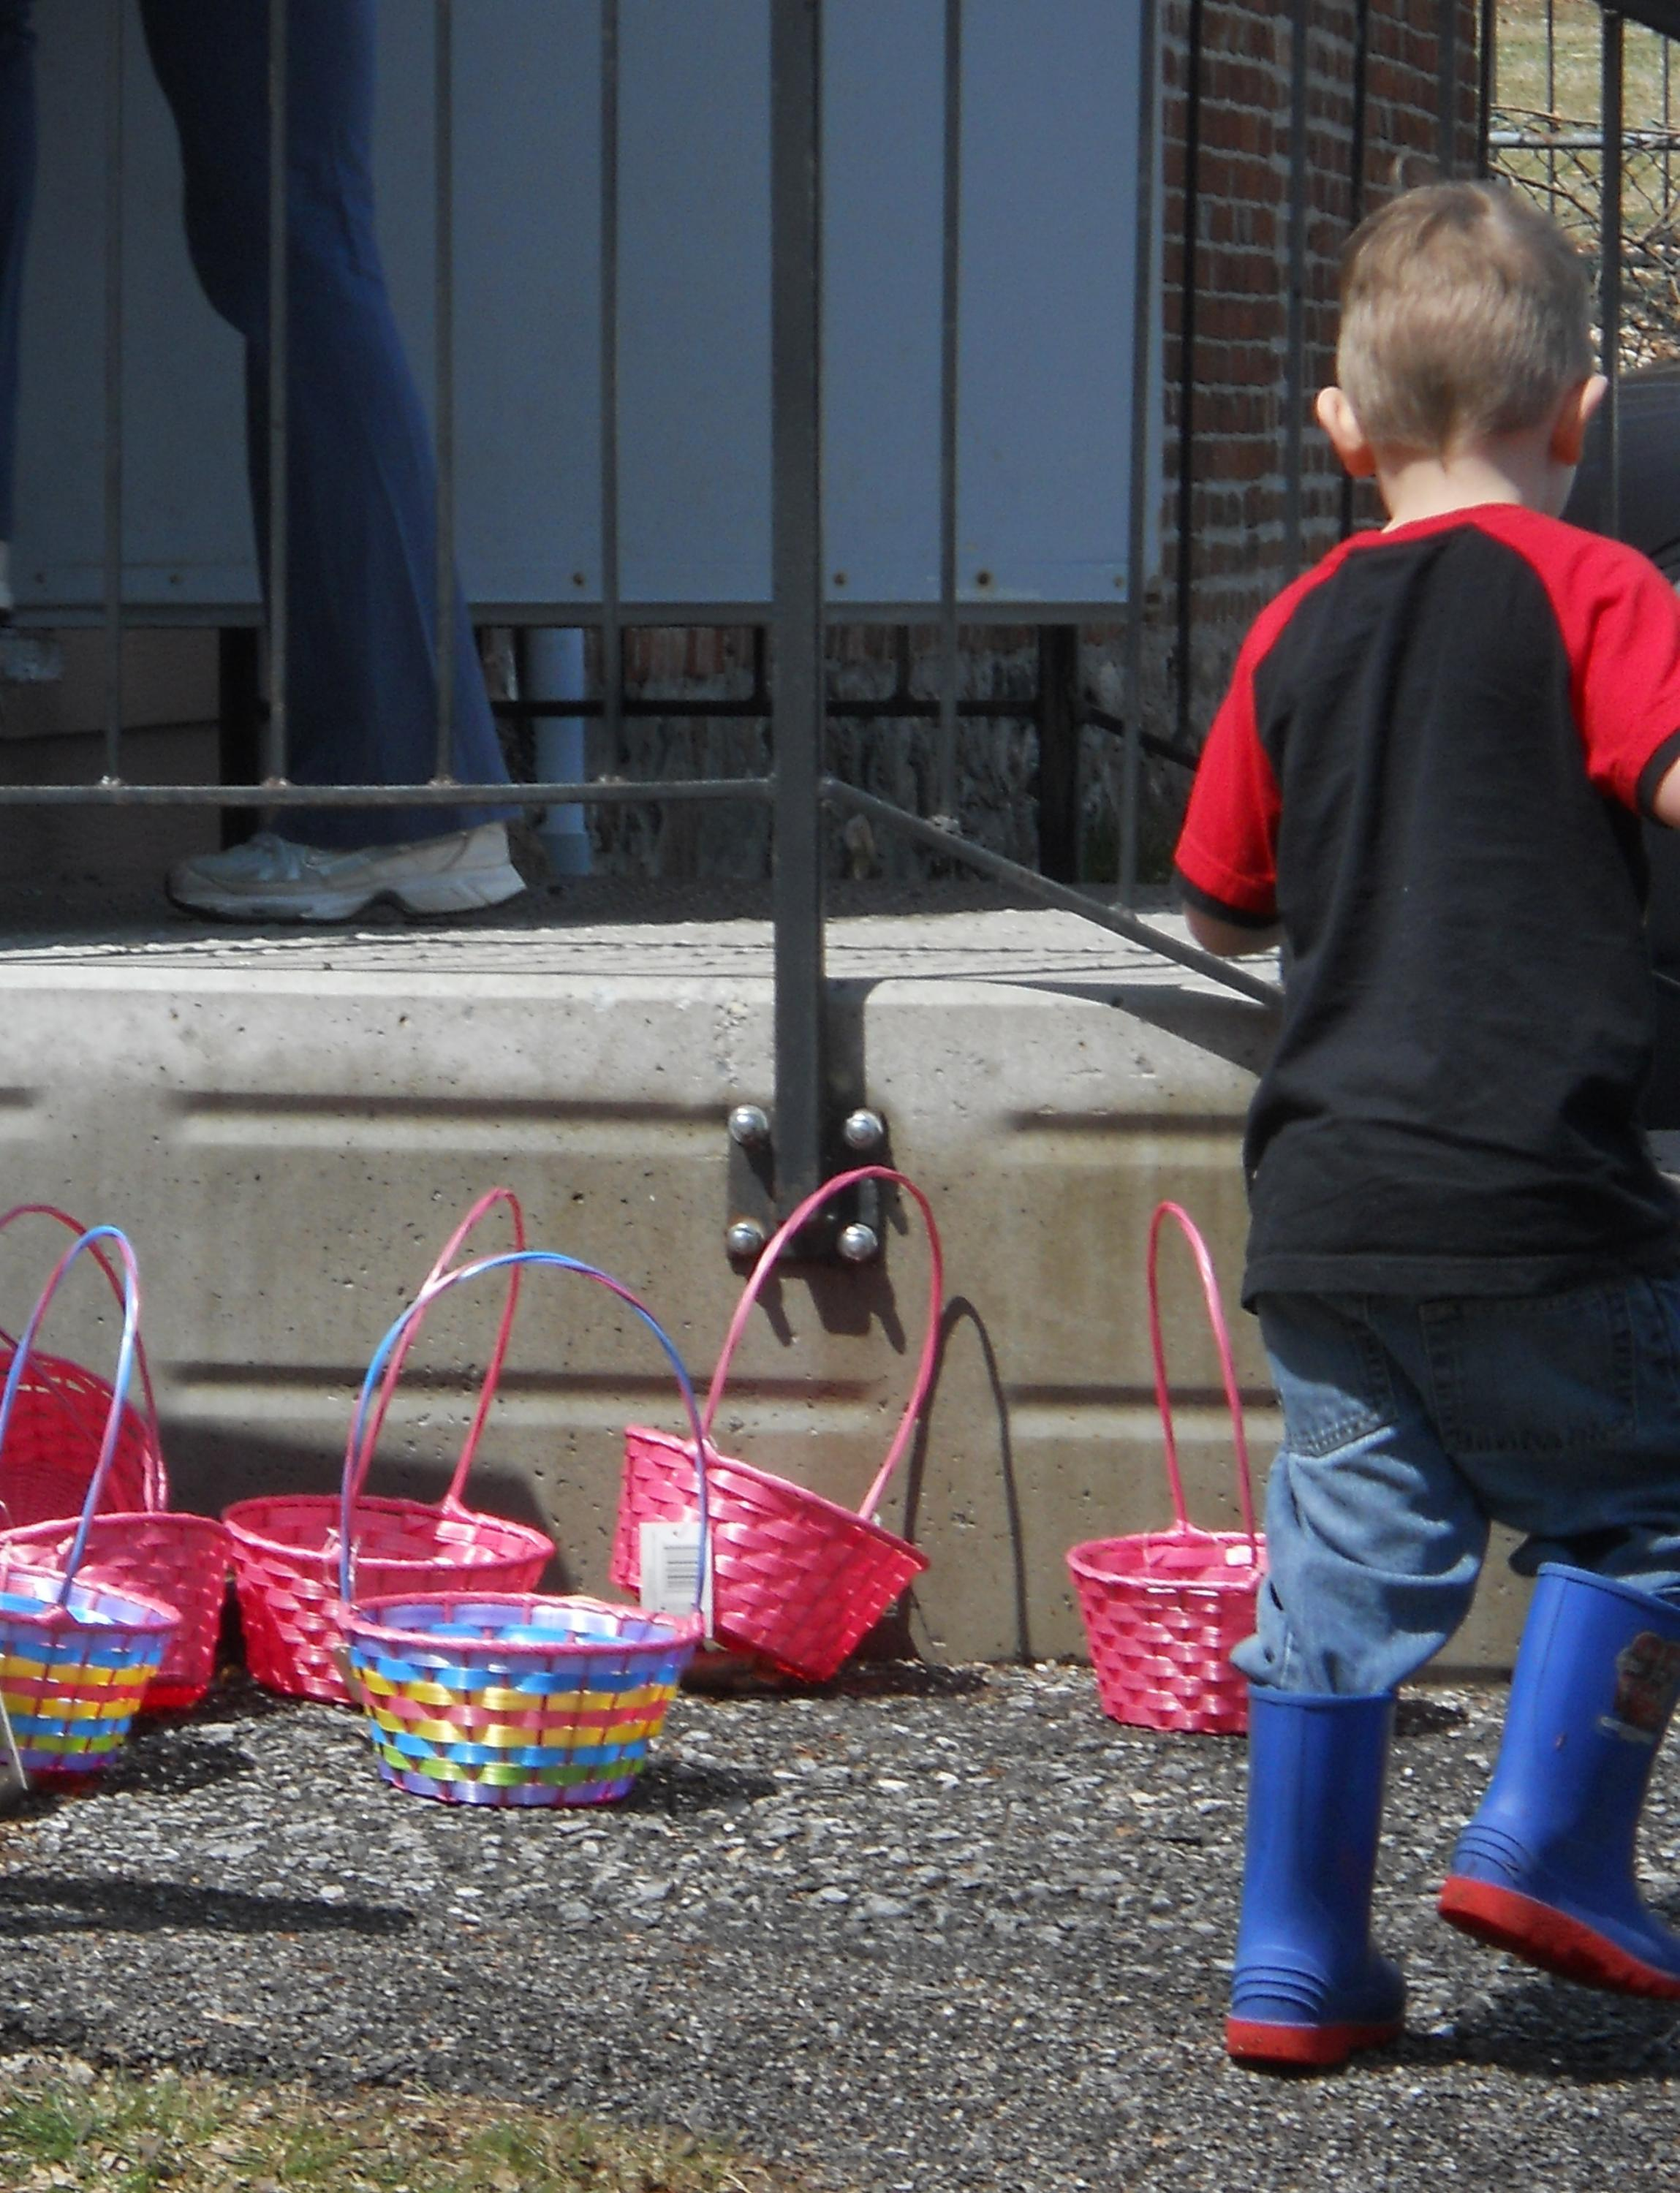 Easter egg baskets and children playing